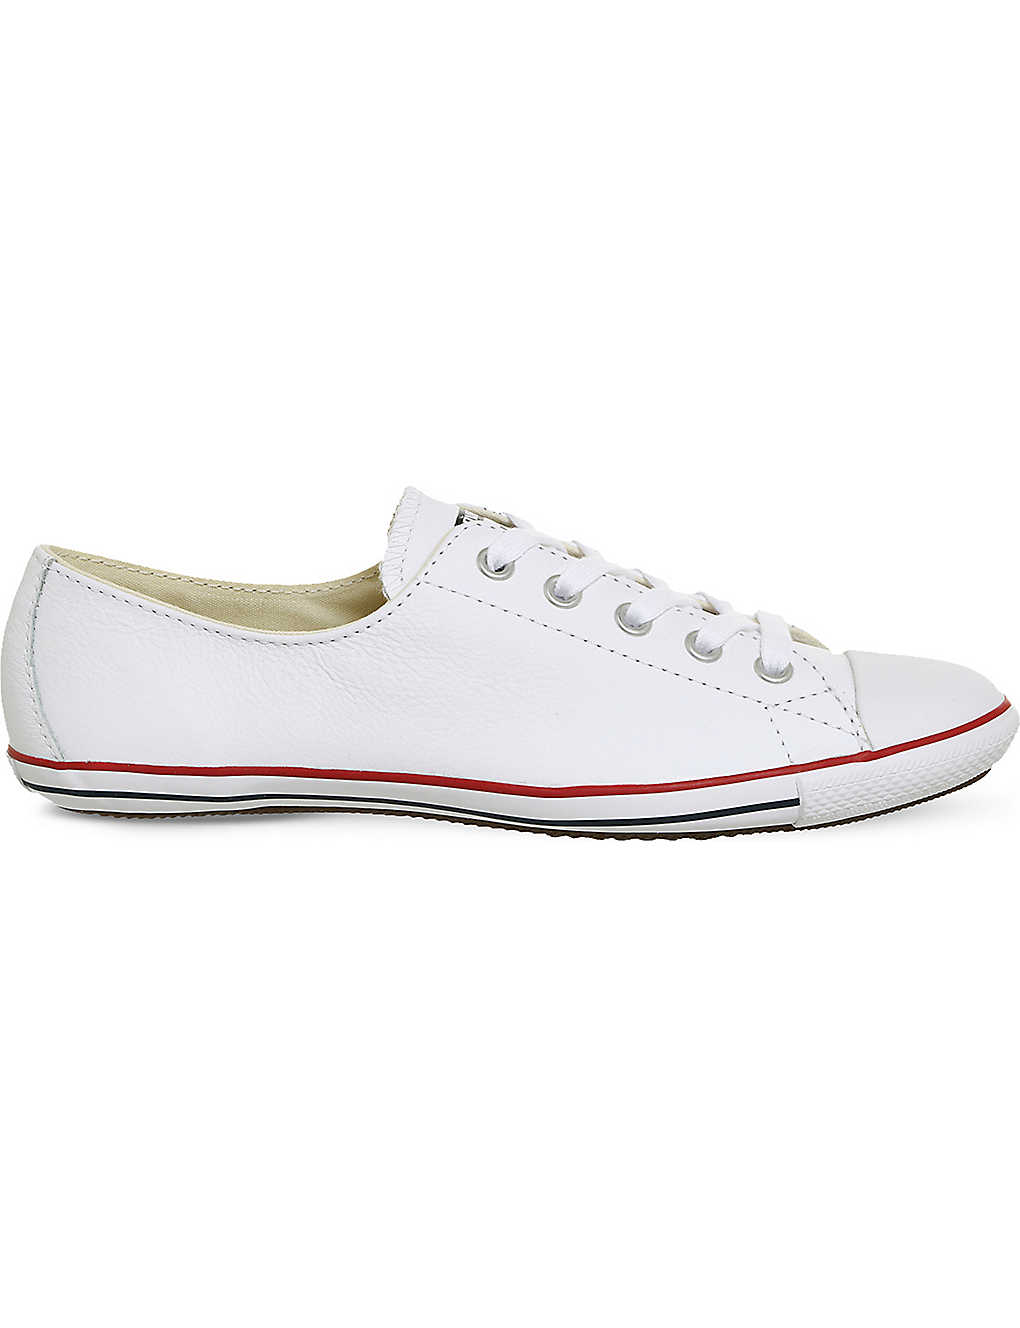 b41804f5602 CONVERSE - Chuck Taylor Lite 2 leather trainers | Selfridges.com